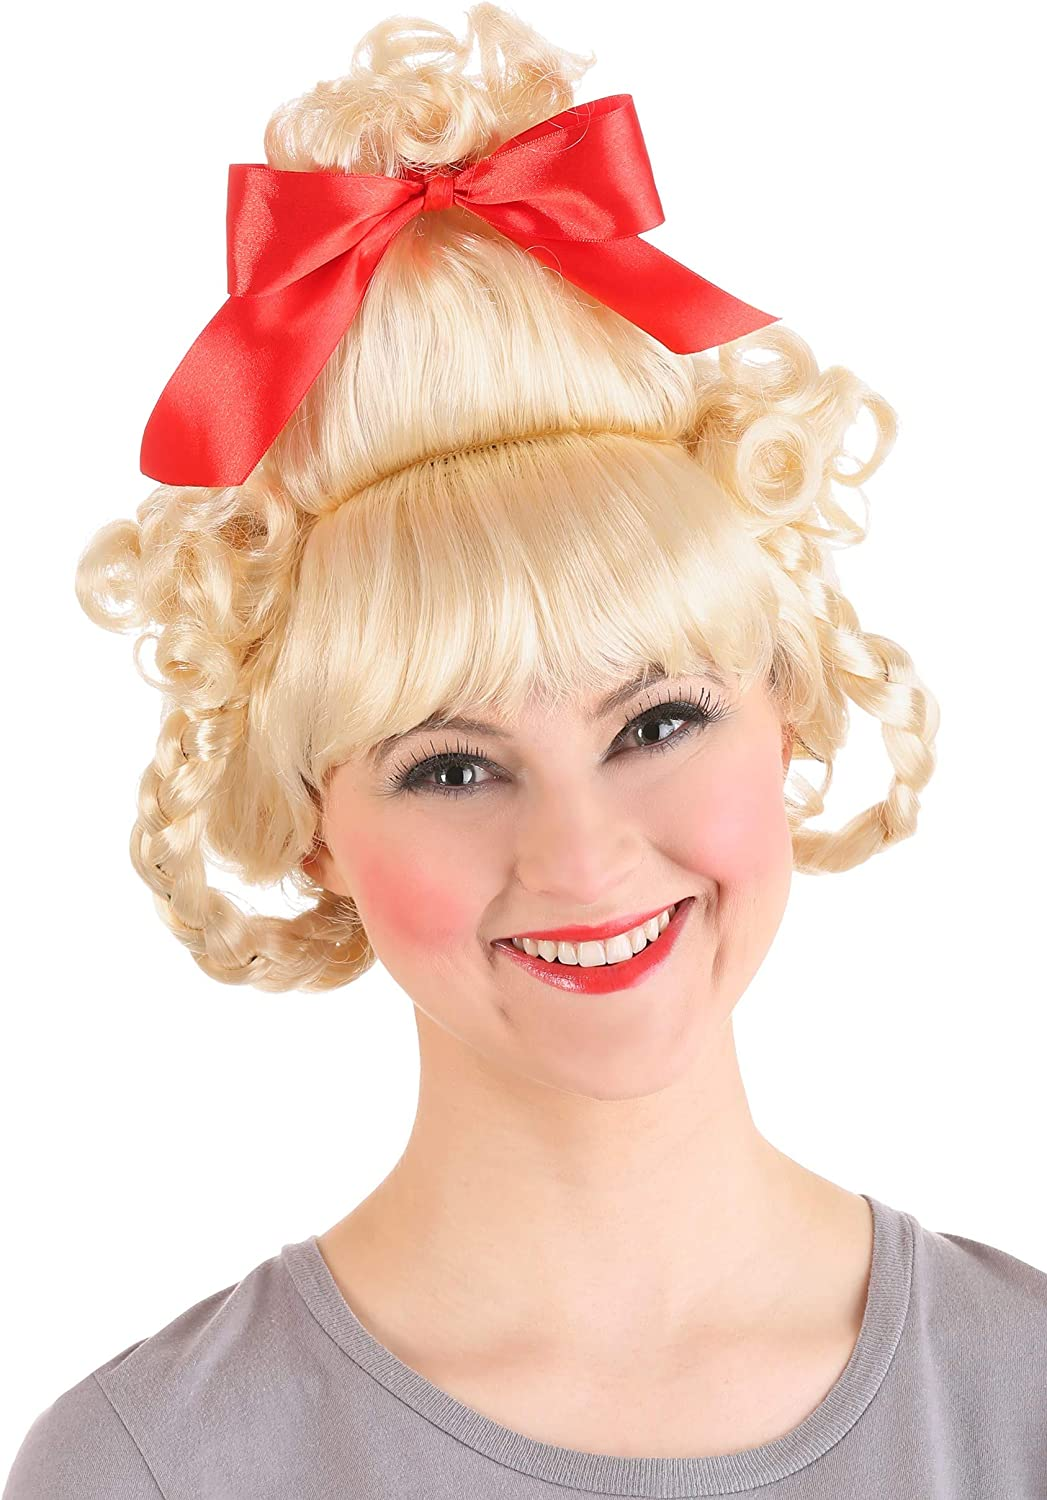 Blonde Christmas Wig Christmas Girl Blonde Wig Red Bow Wig